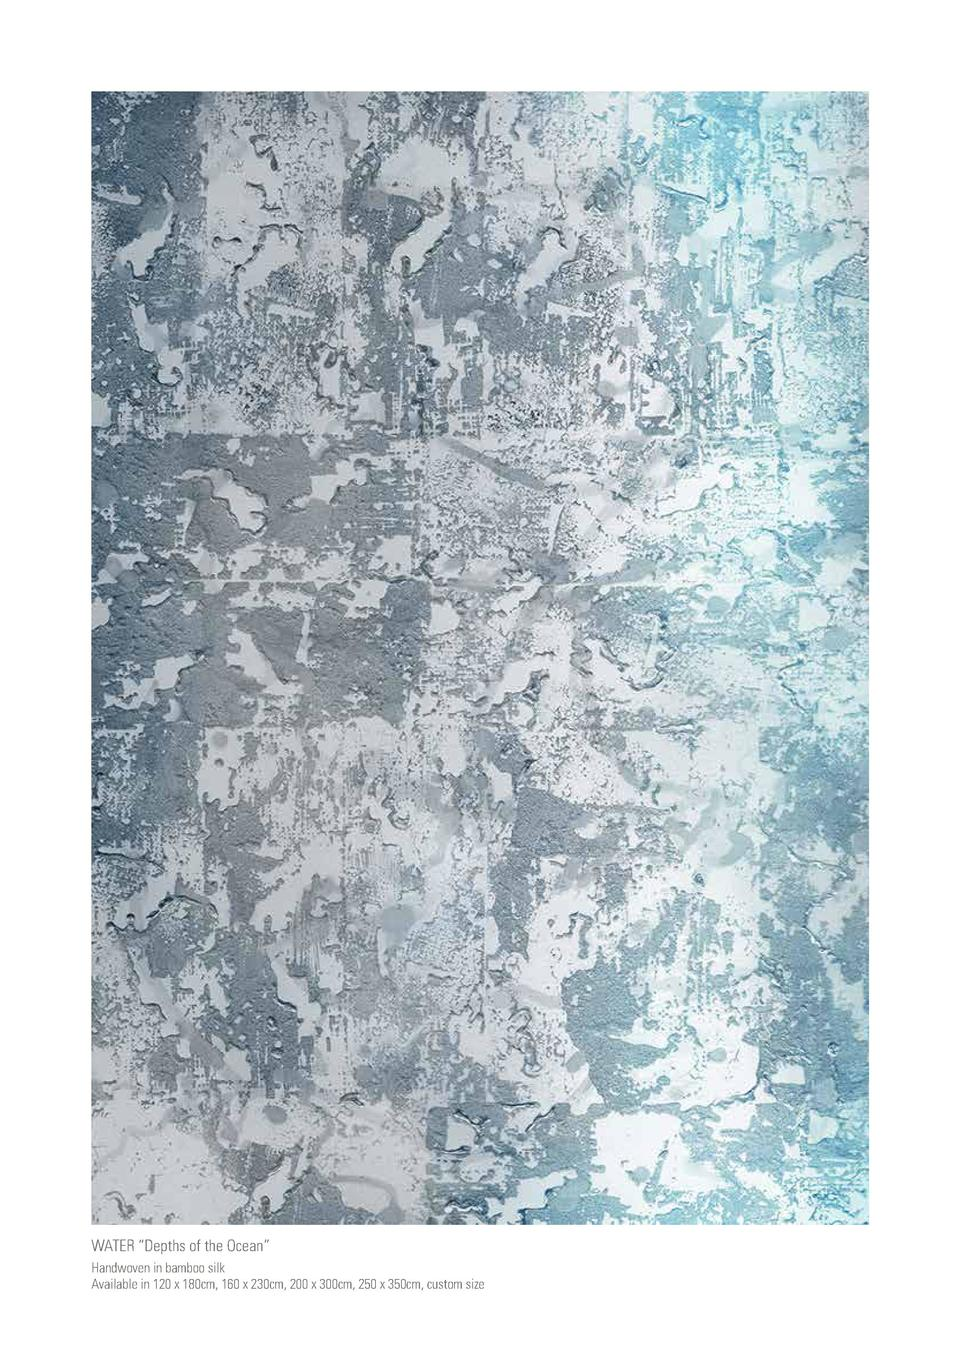 WATER    Depths of the Ocean    Handwoven in bamboo silk Available in 120 x 180cm, 160 x 230cm, 200 x 300cm, 250 x 350cm, ...